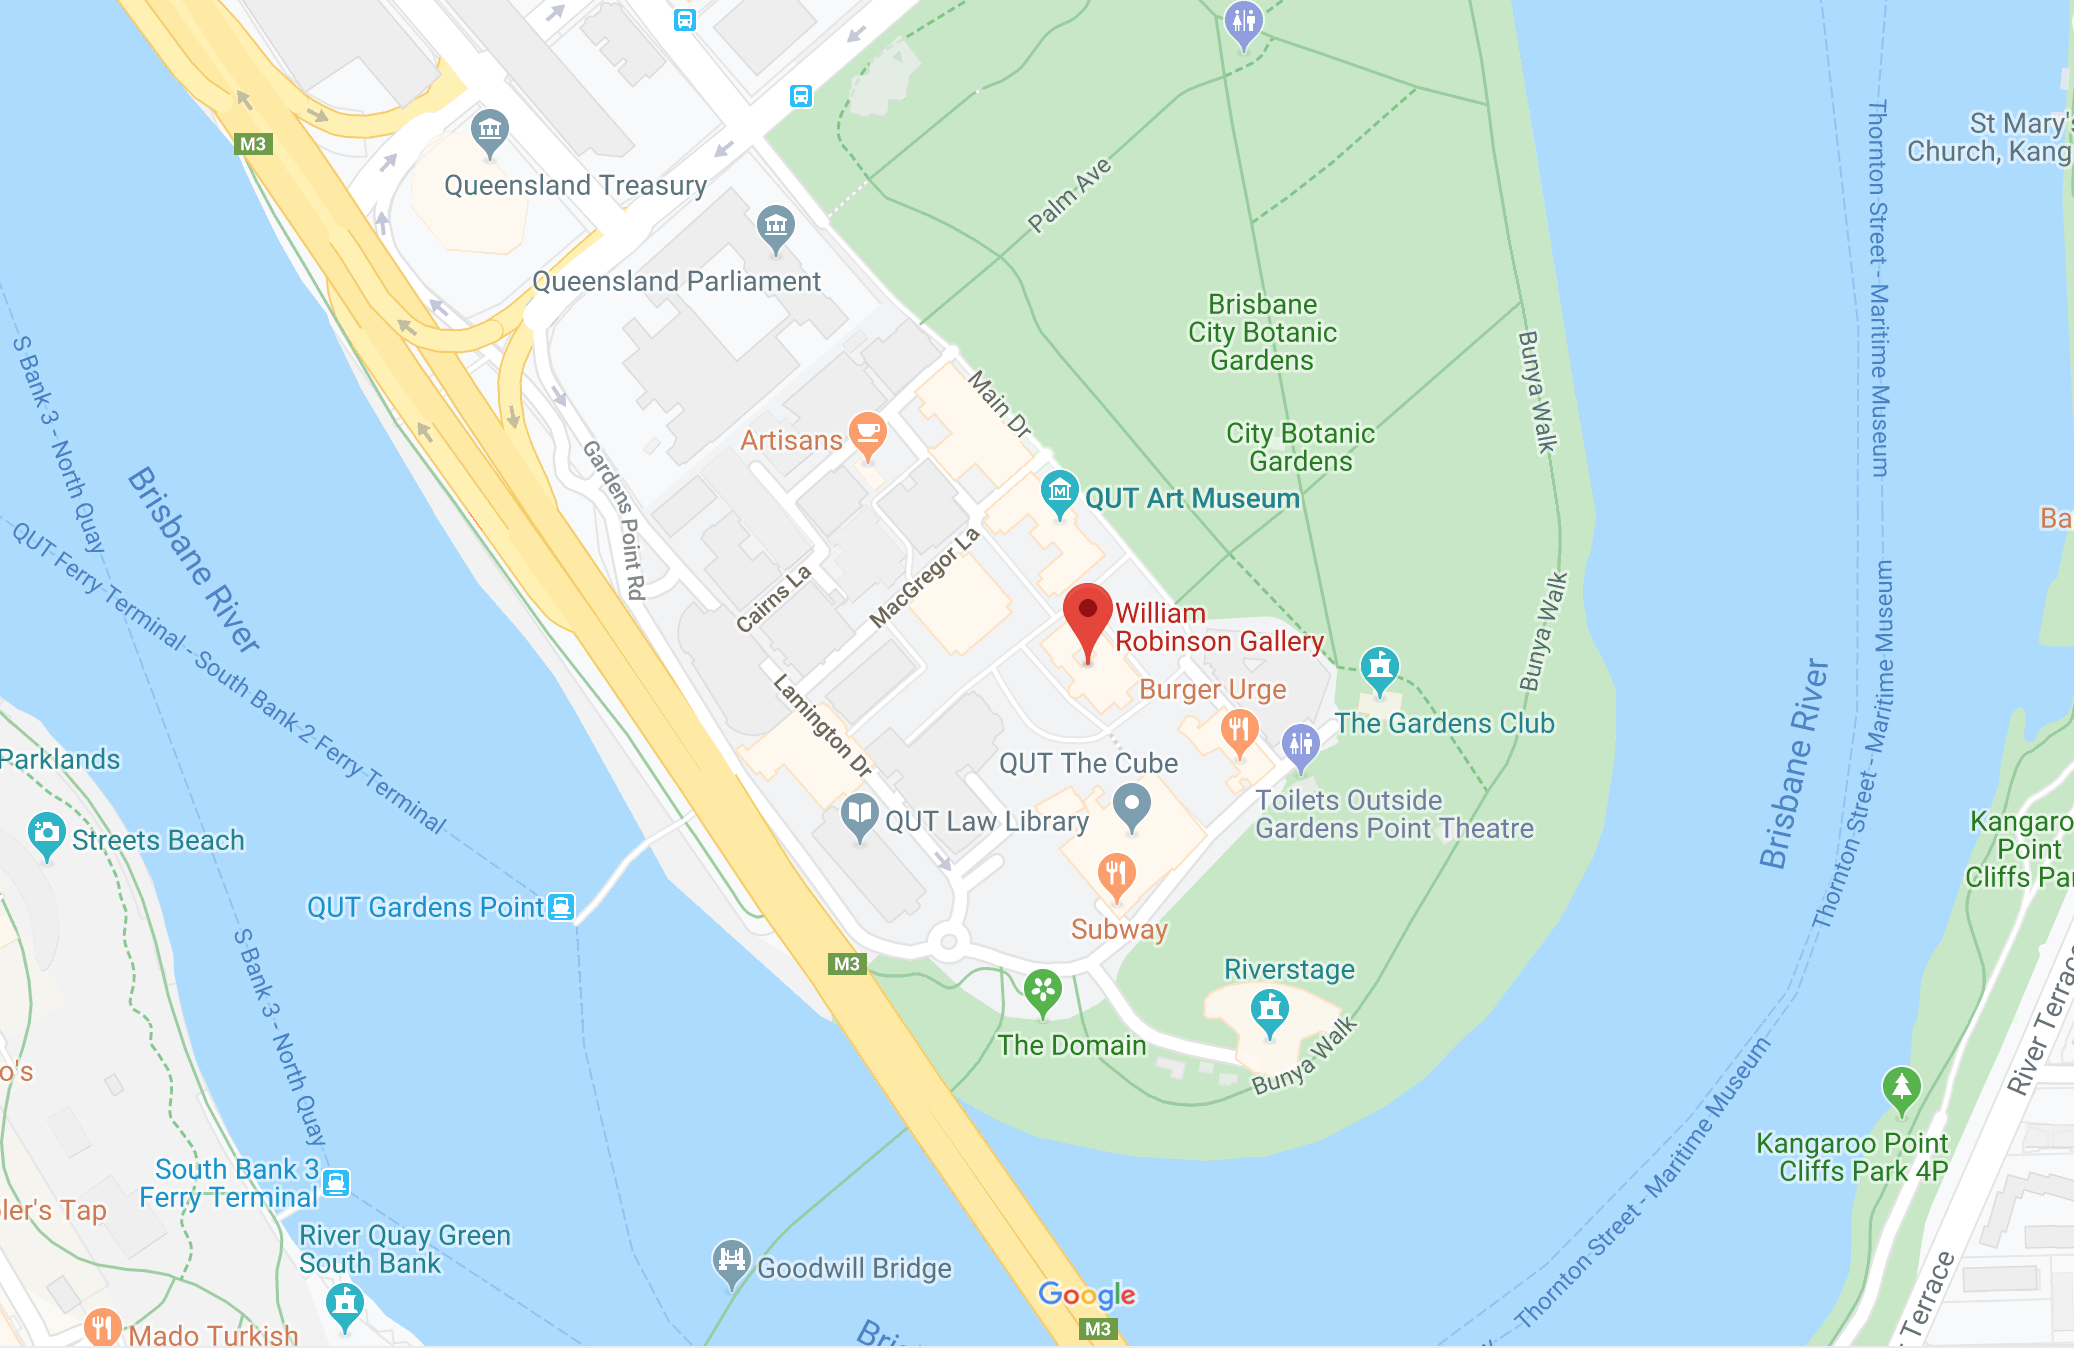 Map of our location